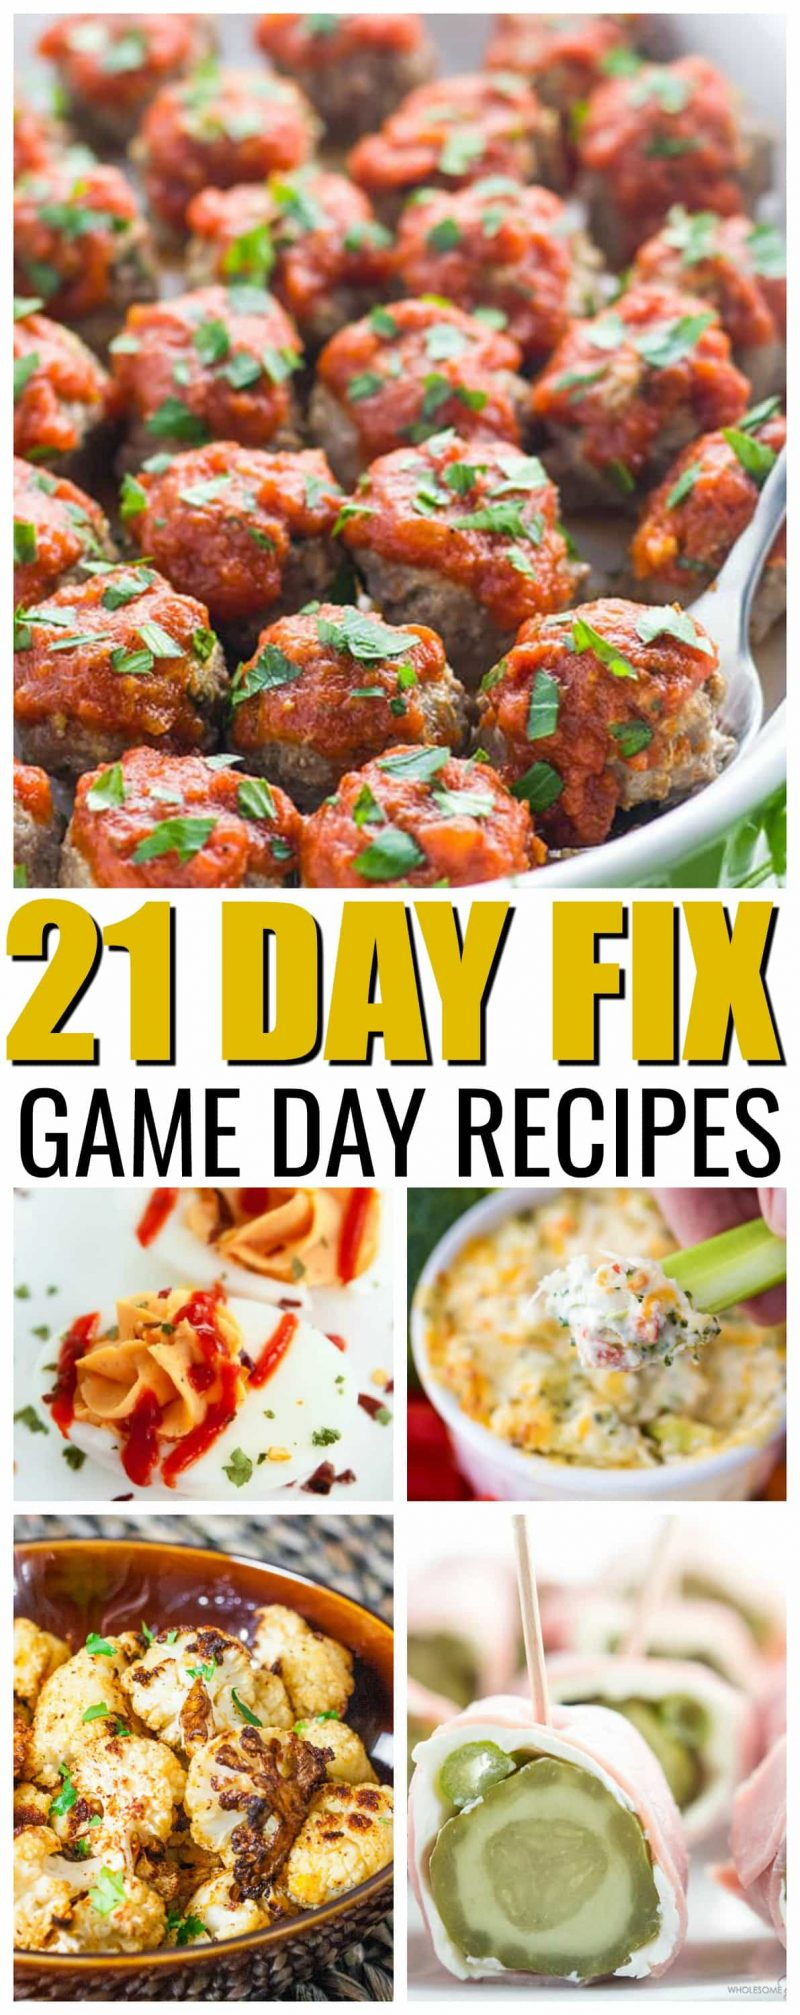 21 Day Fix Game Day Foods